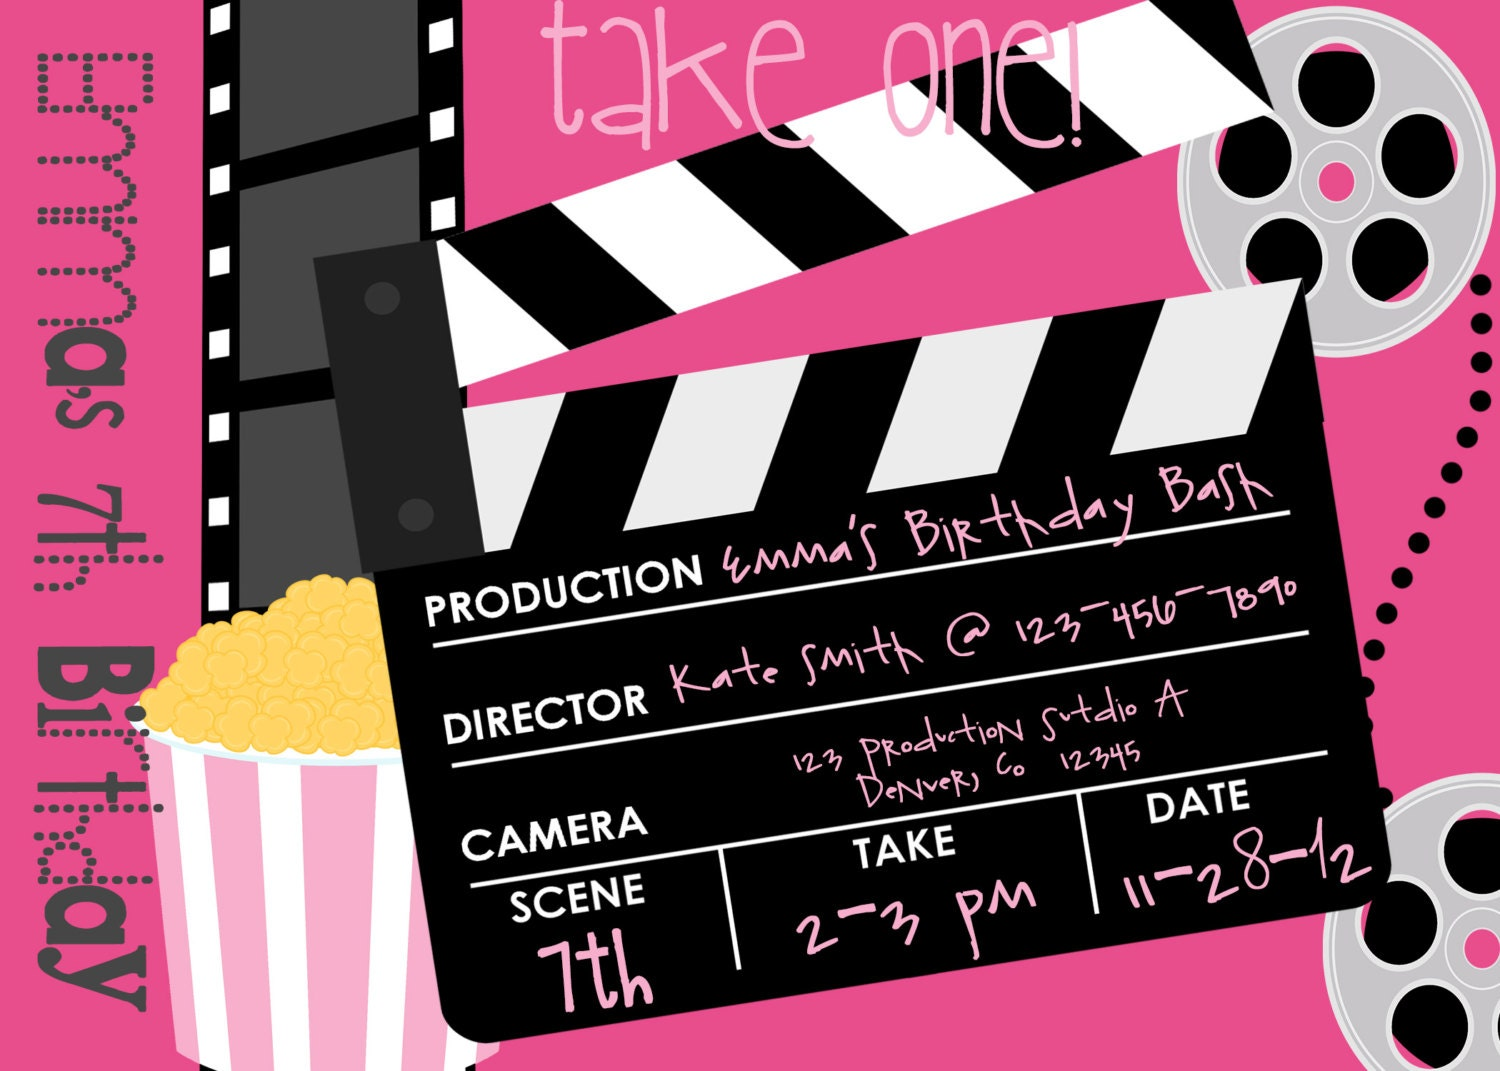 It's just an image of Epic Movie Birthday Party Invitations Printable Free